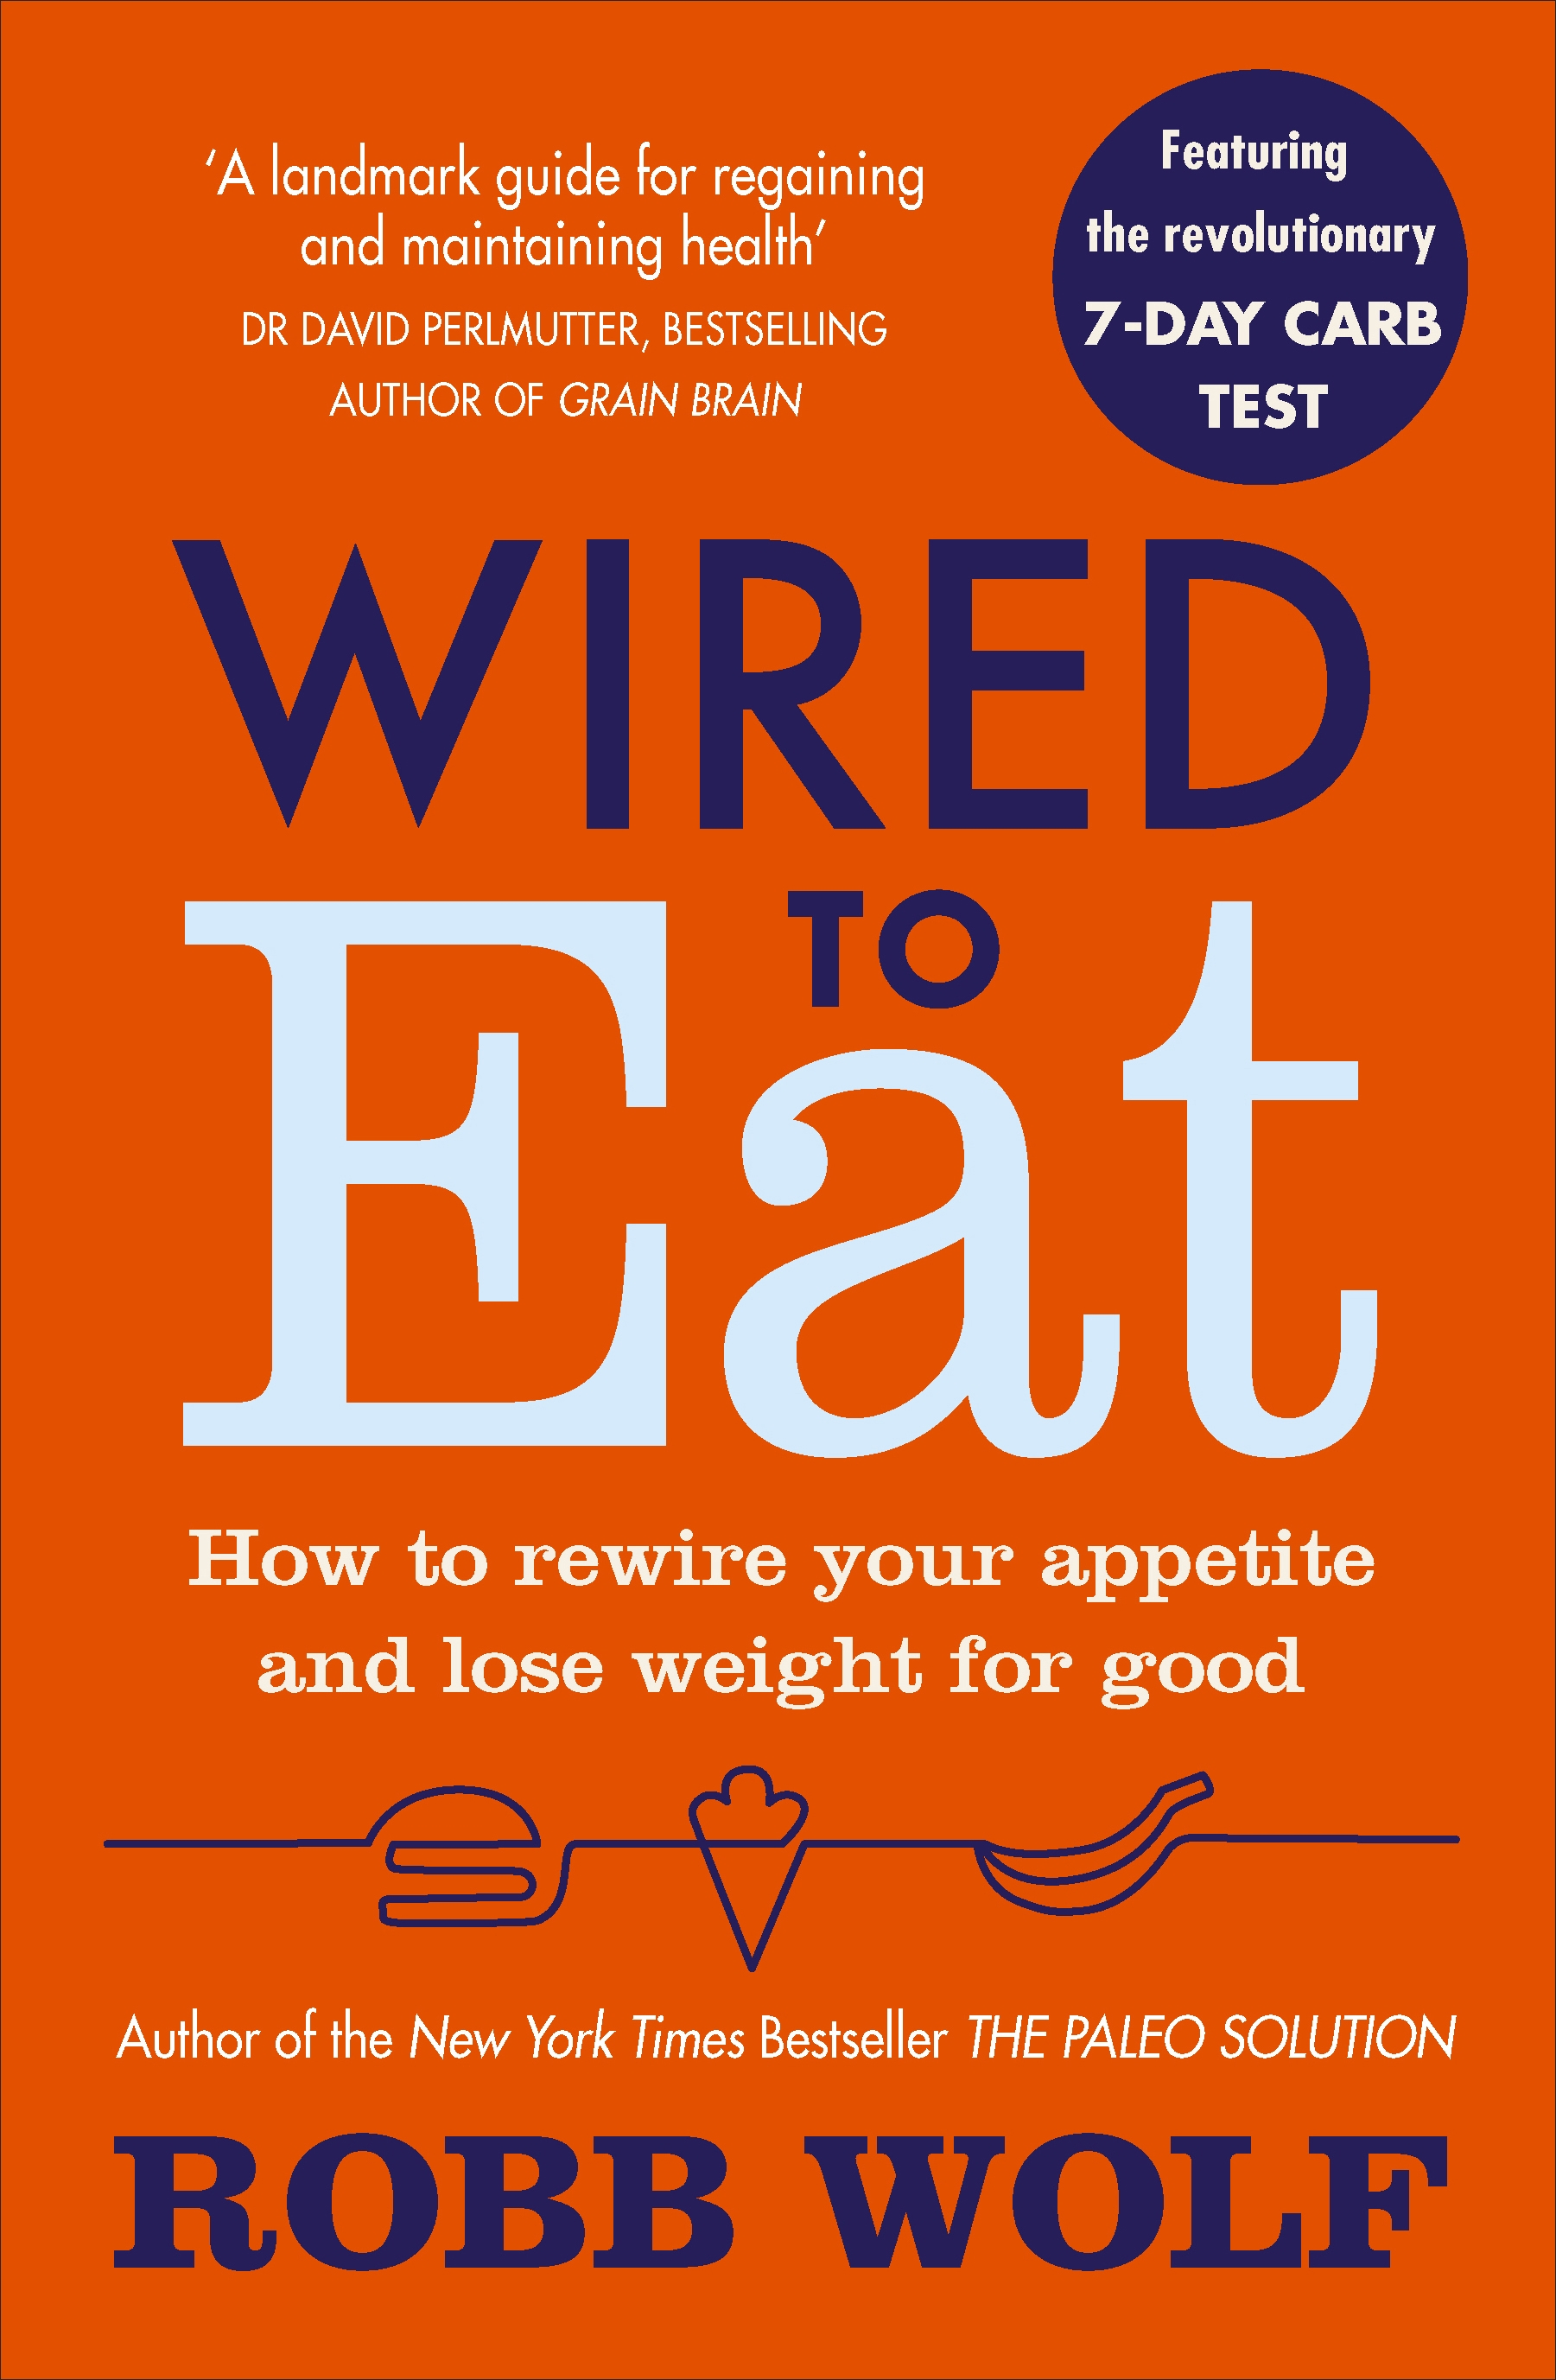 Wired To Eat: How to rewire your appetite and lose weight for good by Robb Wolf, ISBN: 9781785041433